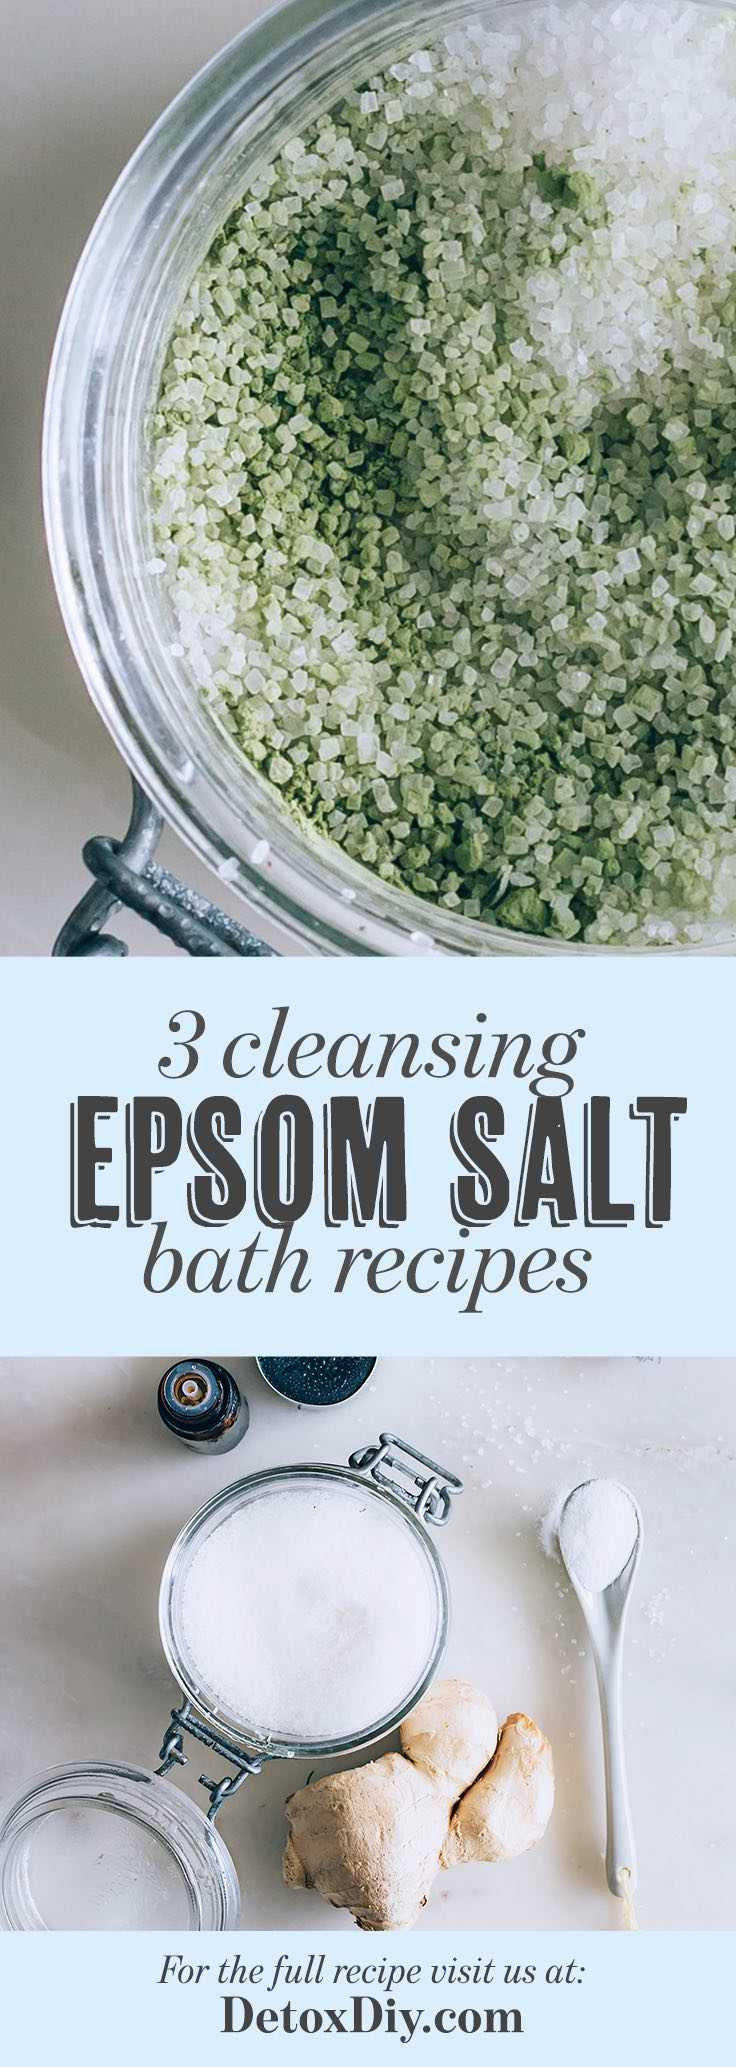 use these easy epsom salt bath recipes to soothe your body, cleanse your skin and relax your mind.